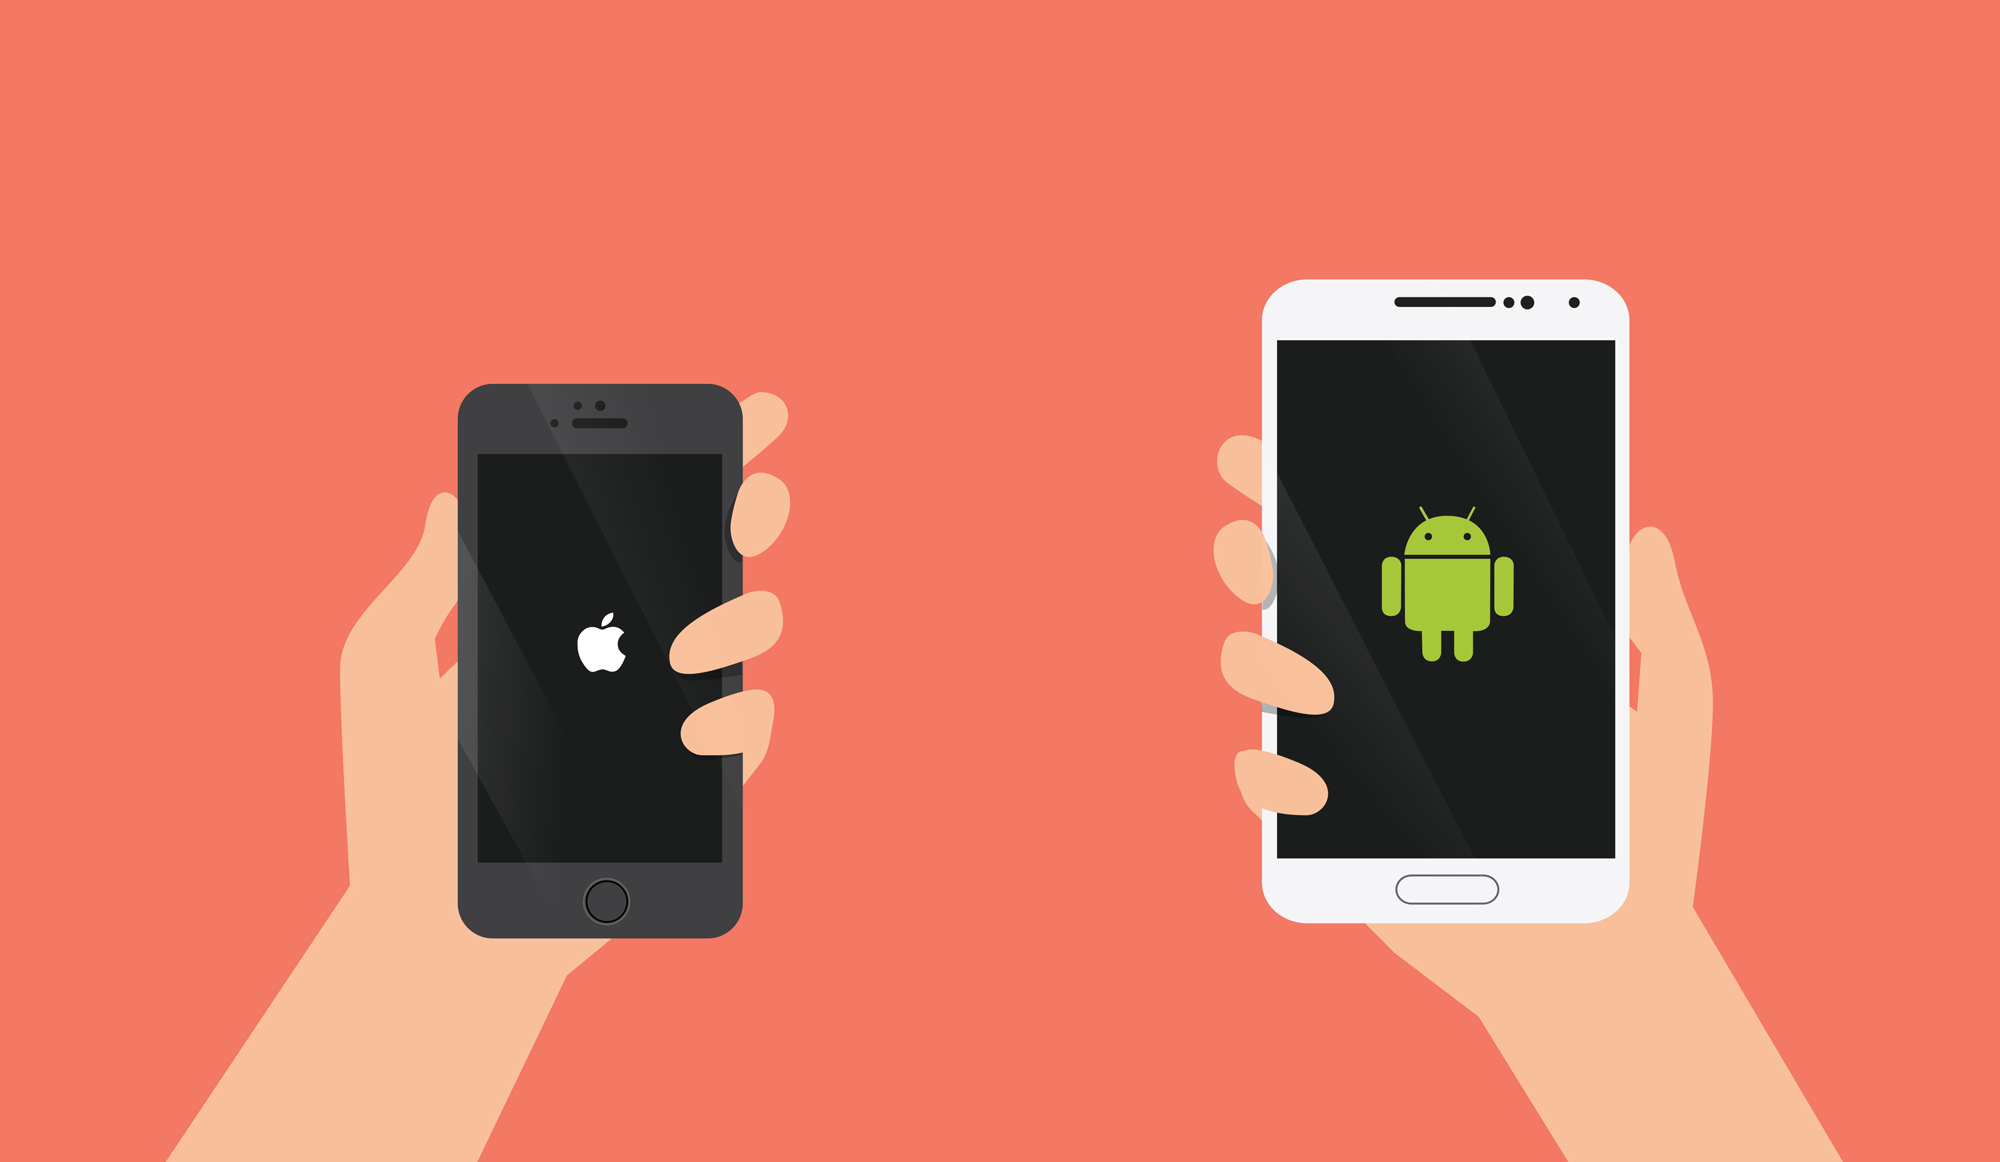 android phones versus iphones We could say ios is optimized to squeeze the most out of the battery per mah rating, but you can buy an android device with a much bigger battery that will easily outlast the iphone.